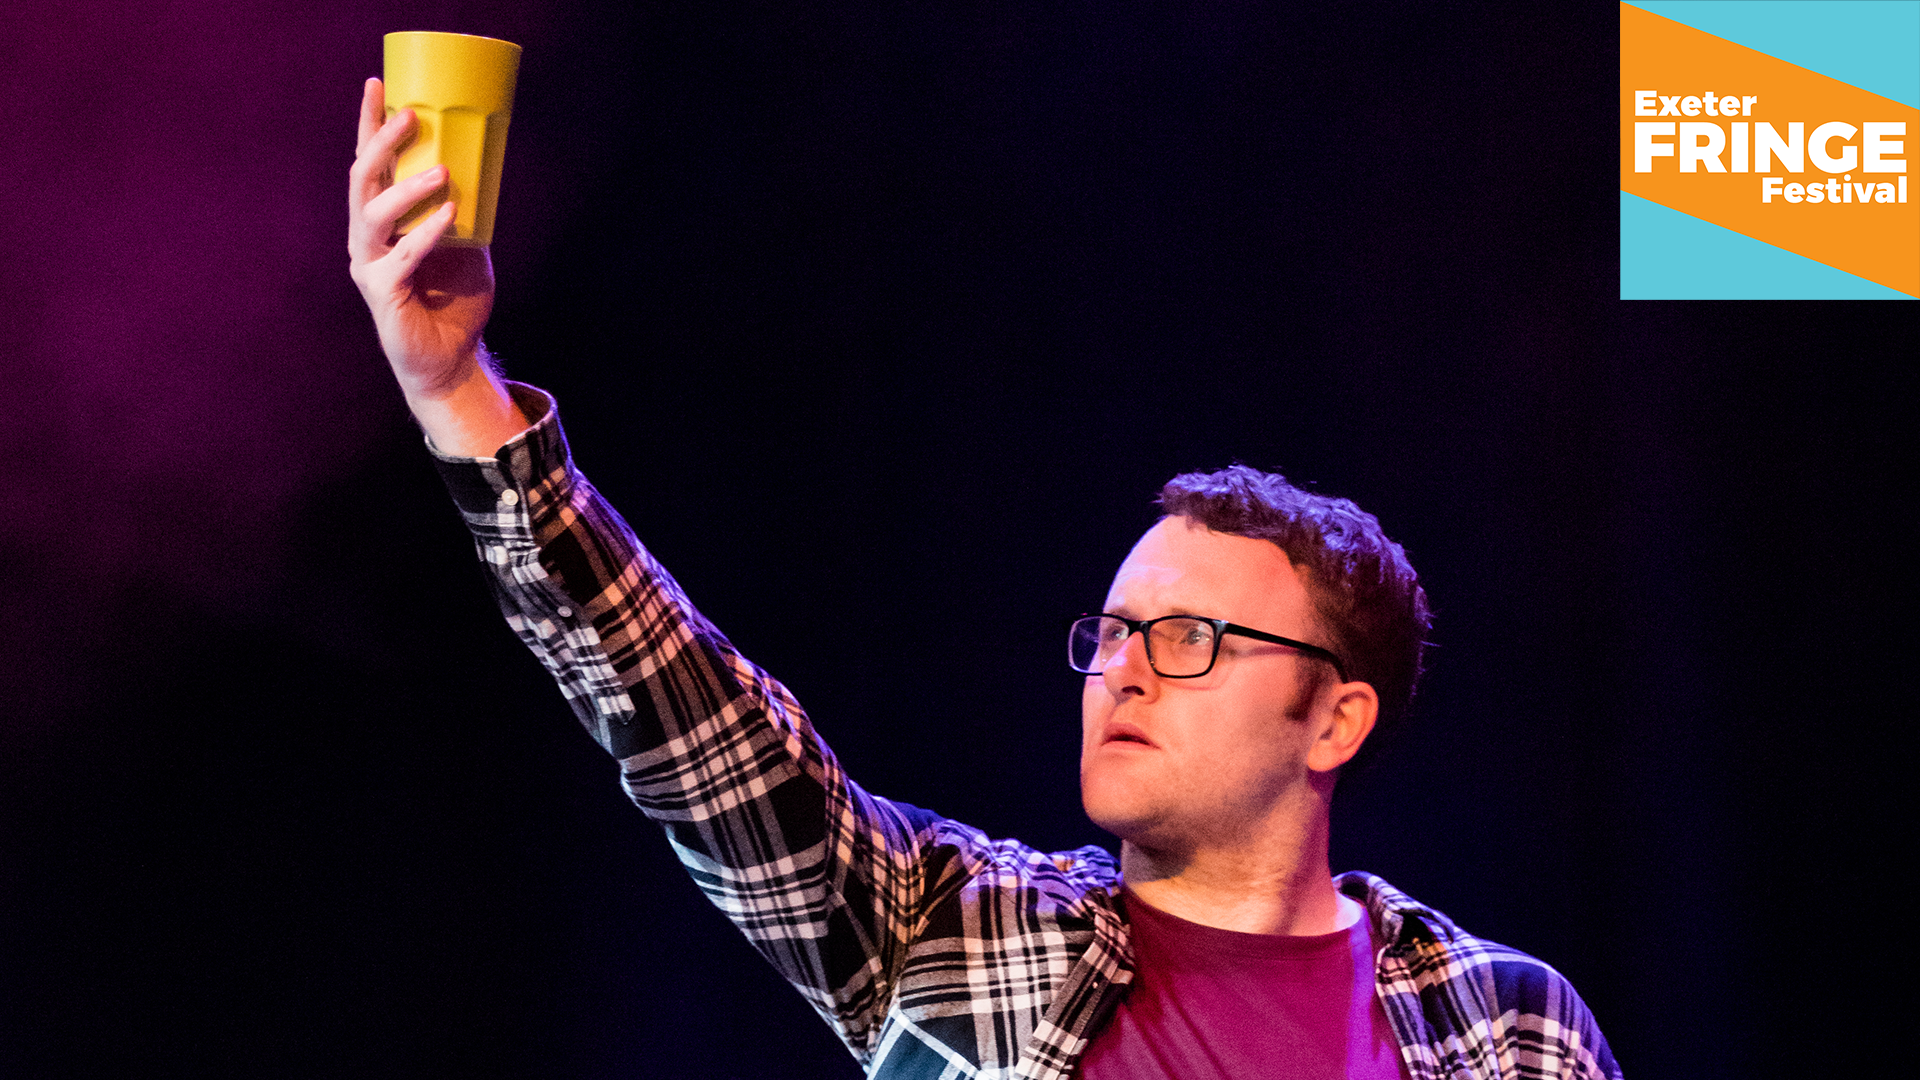 Promotional image for Futures Scratch Night - a young man on stage, holding high a yellow cup